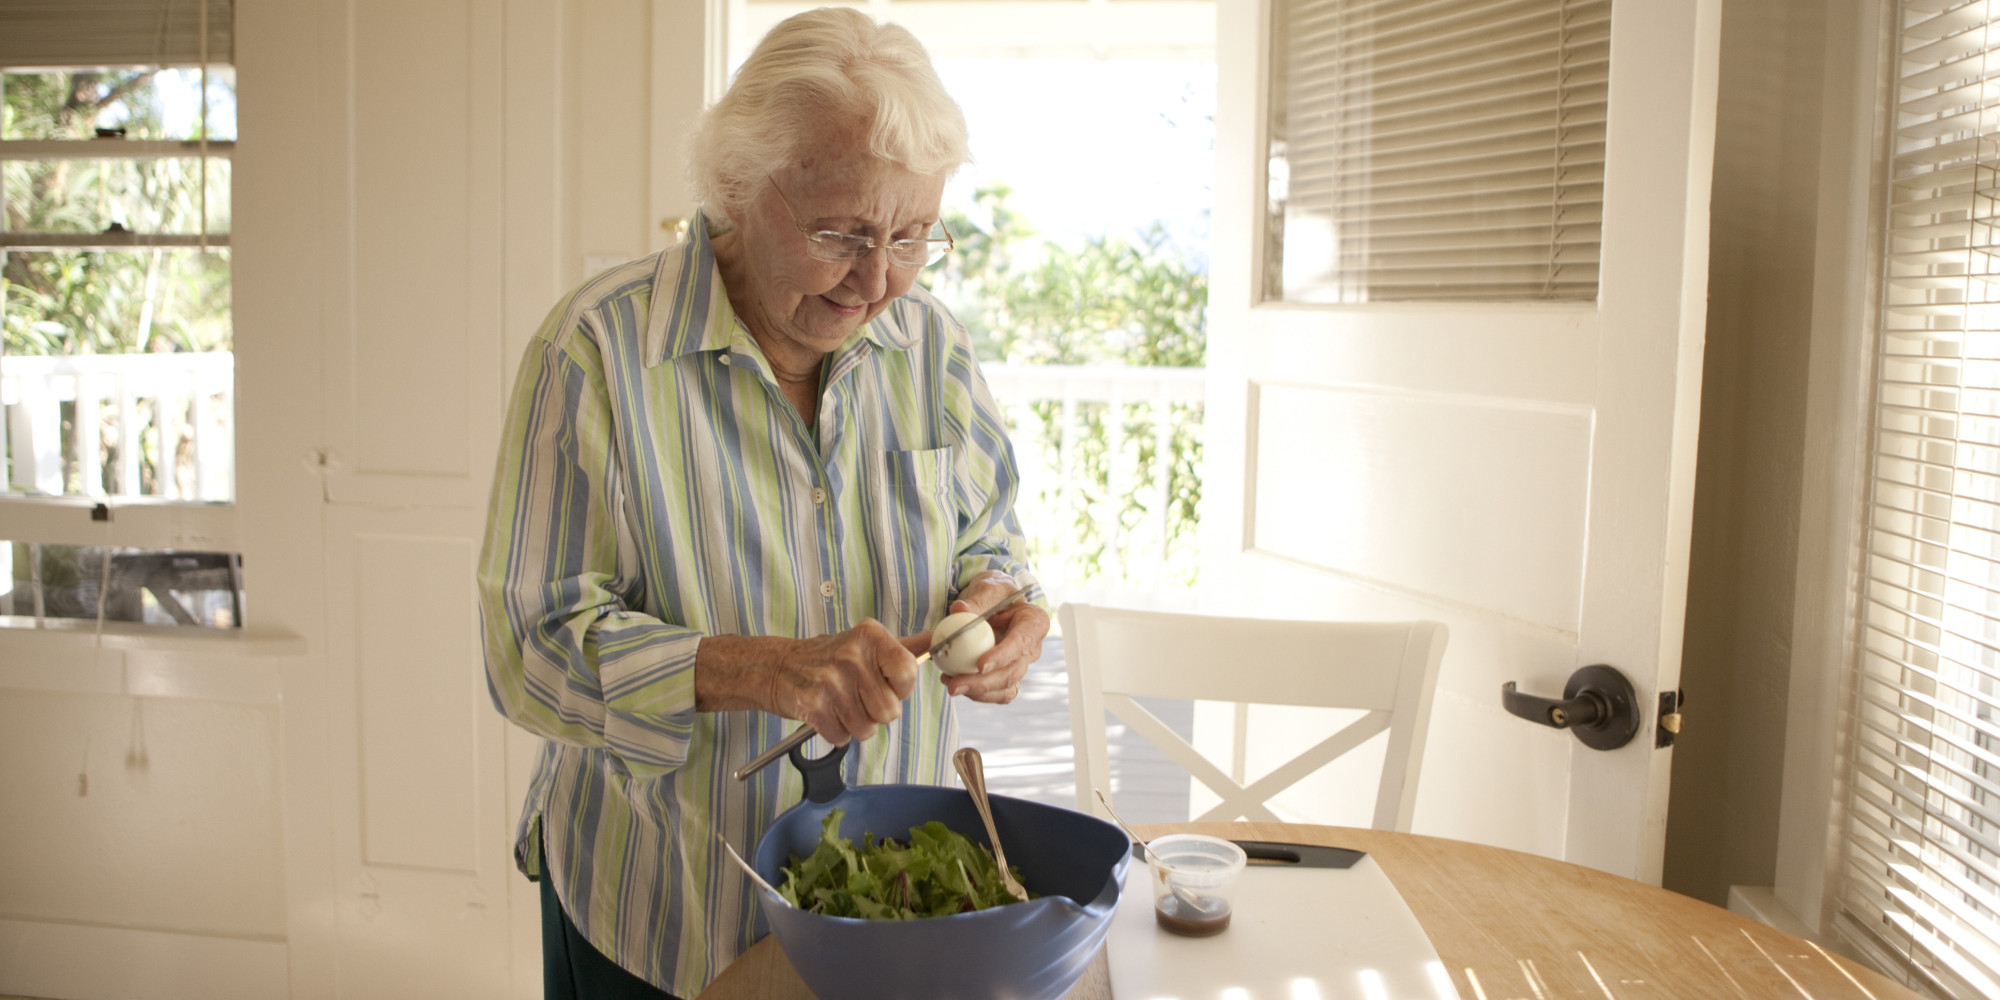 5 Reasons Your Great Grandmother Was Healthier Than You